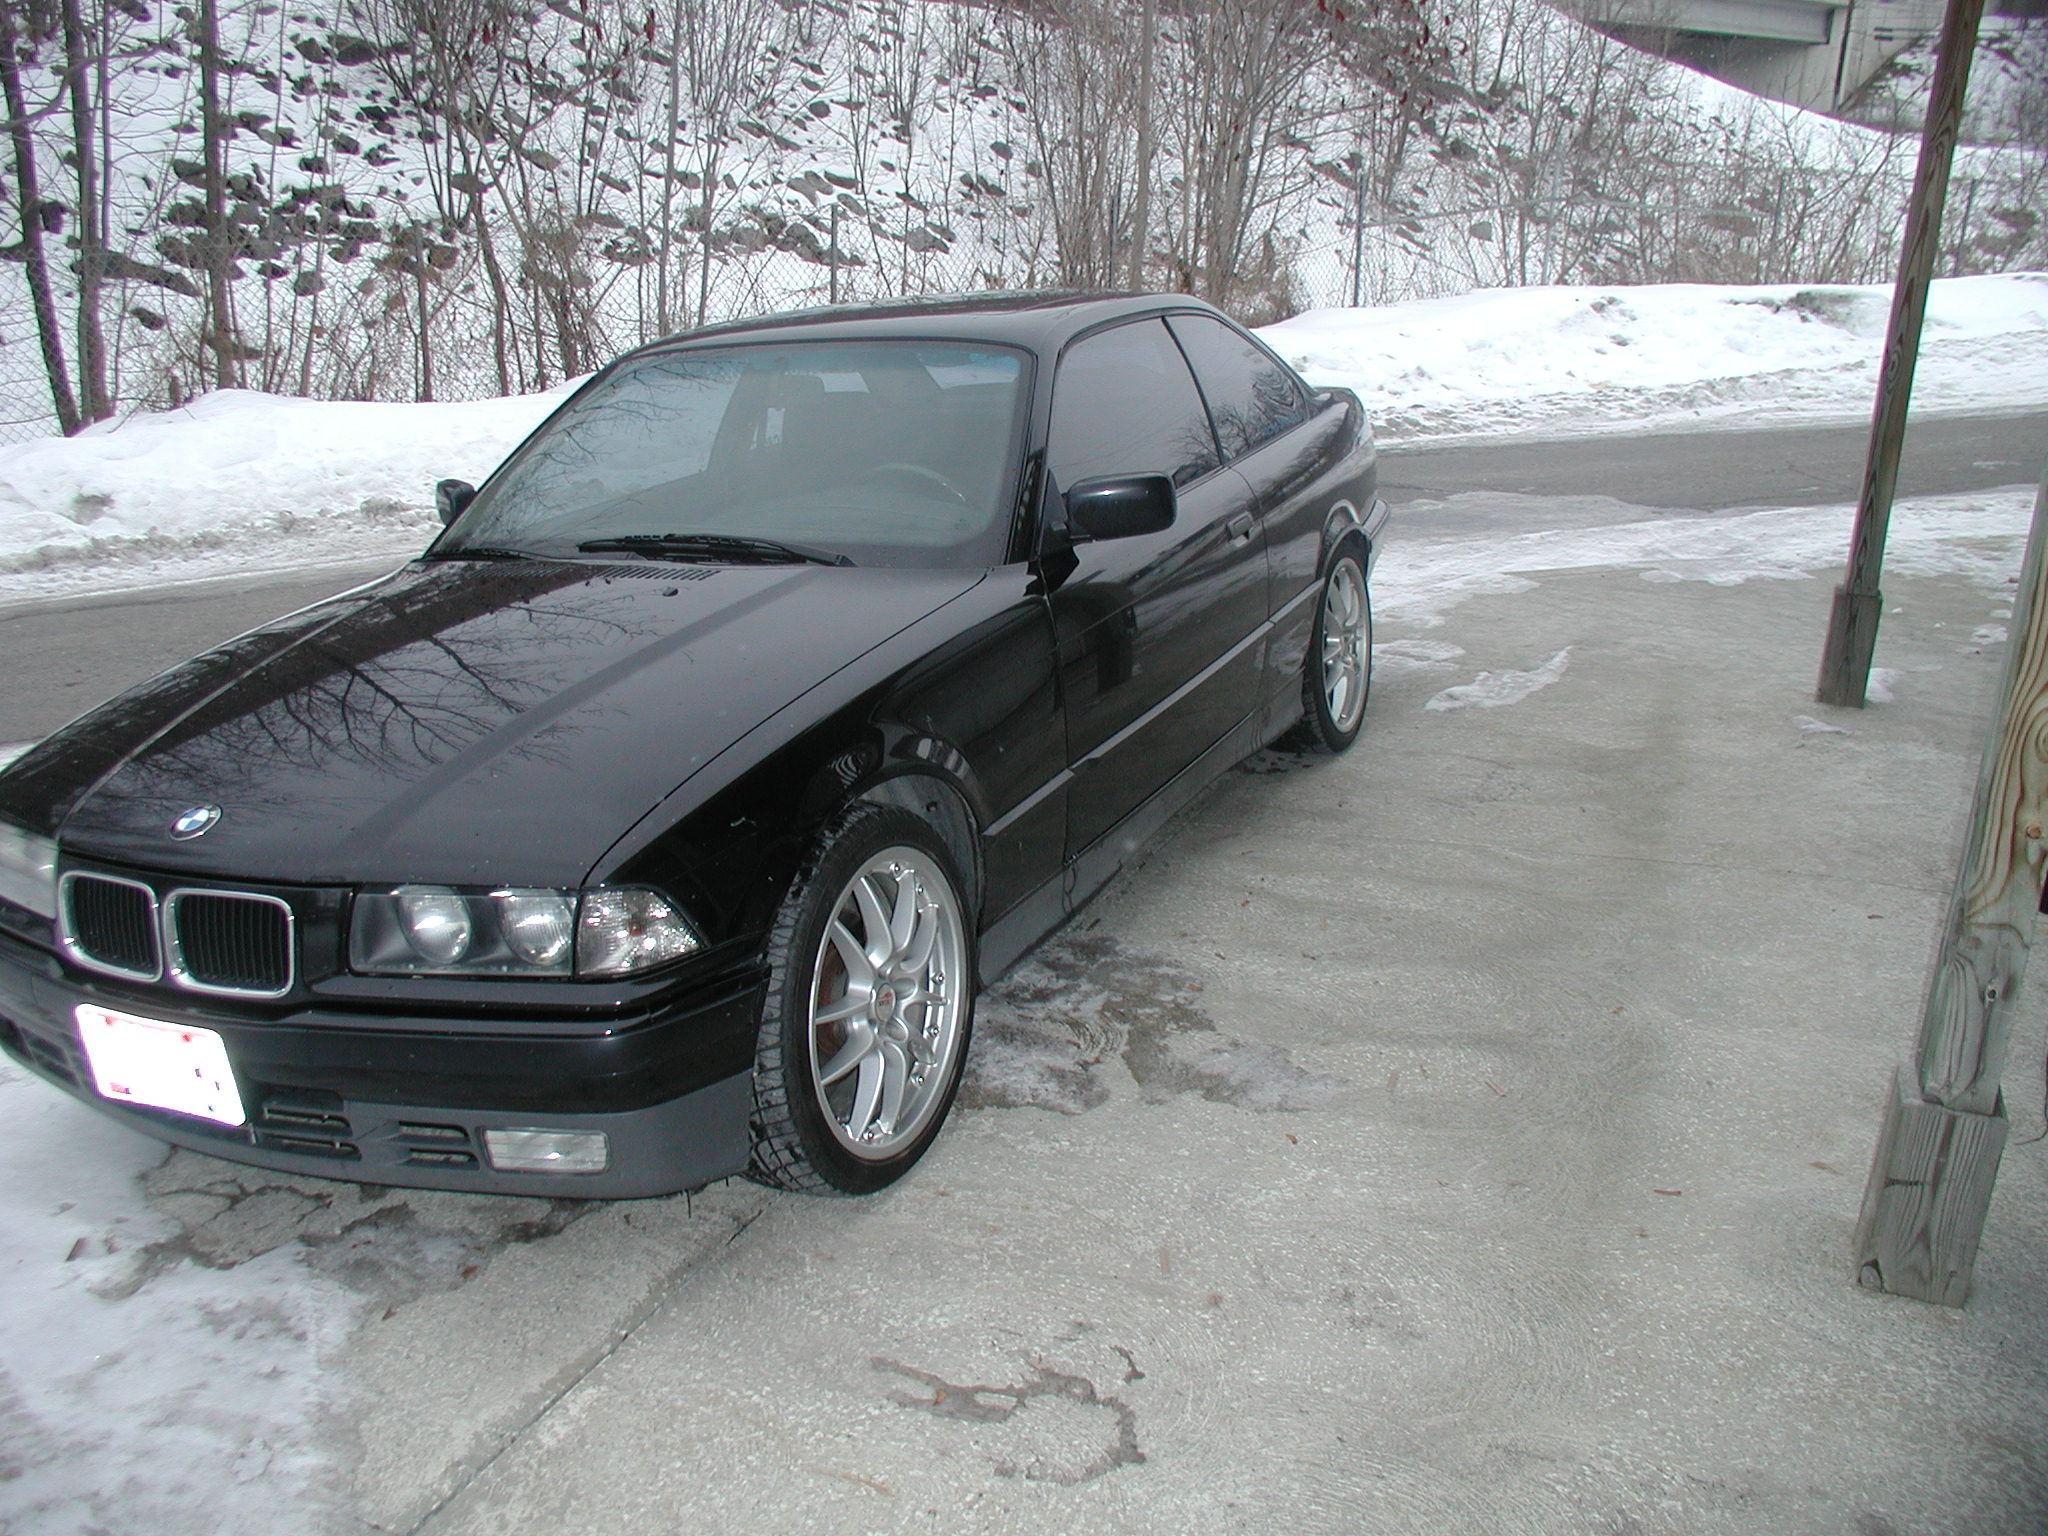 BMW - 318 SERIES - Other - Pennsylvania - Used Car - New Car Price - Vehicle